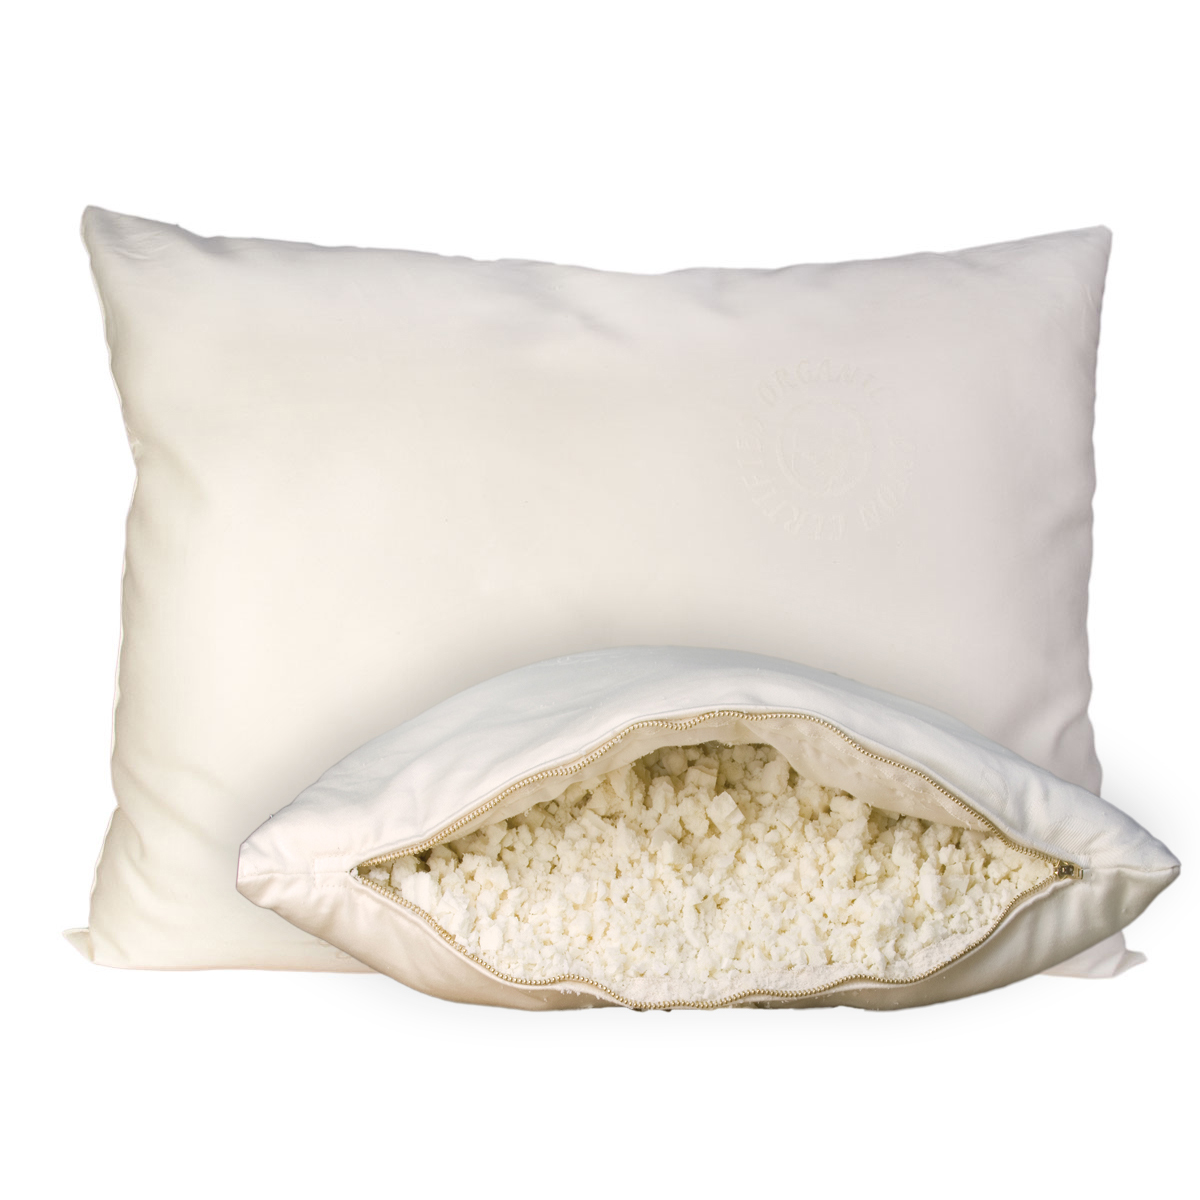 Wool-Wrapped Shredded Rubber Pillow